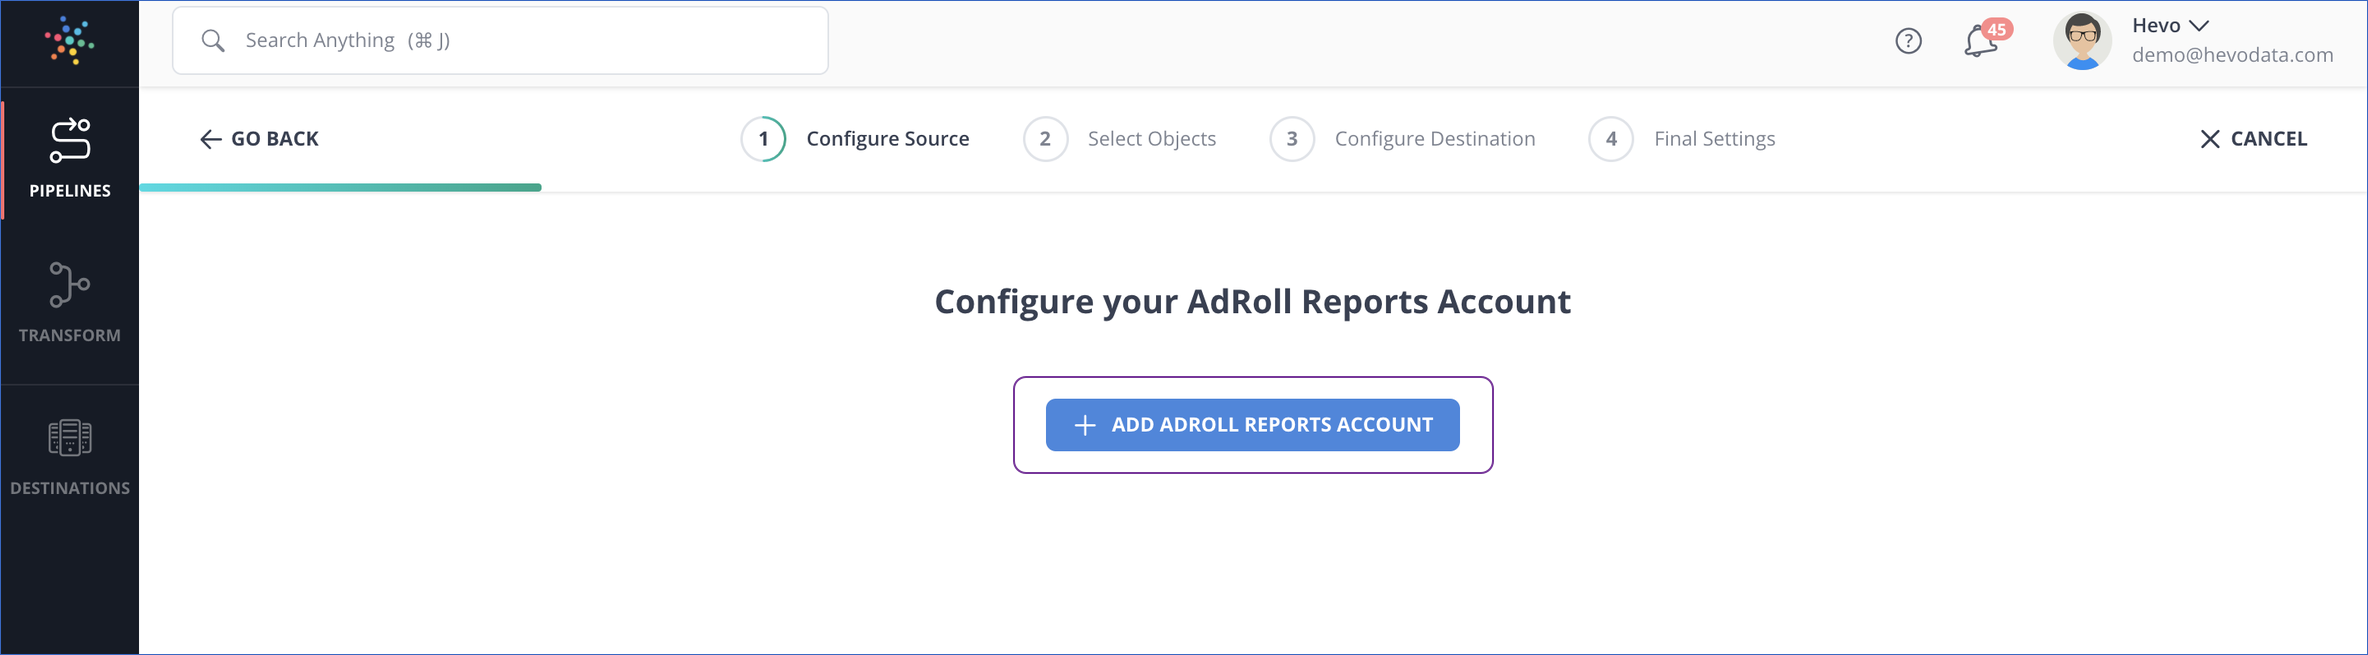 Add AdRoll Reports account